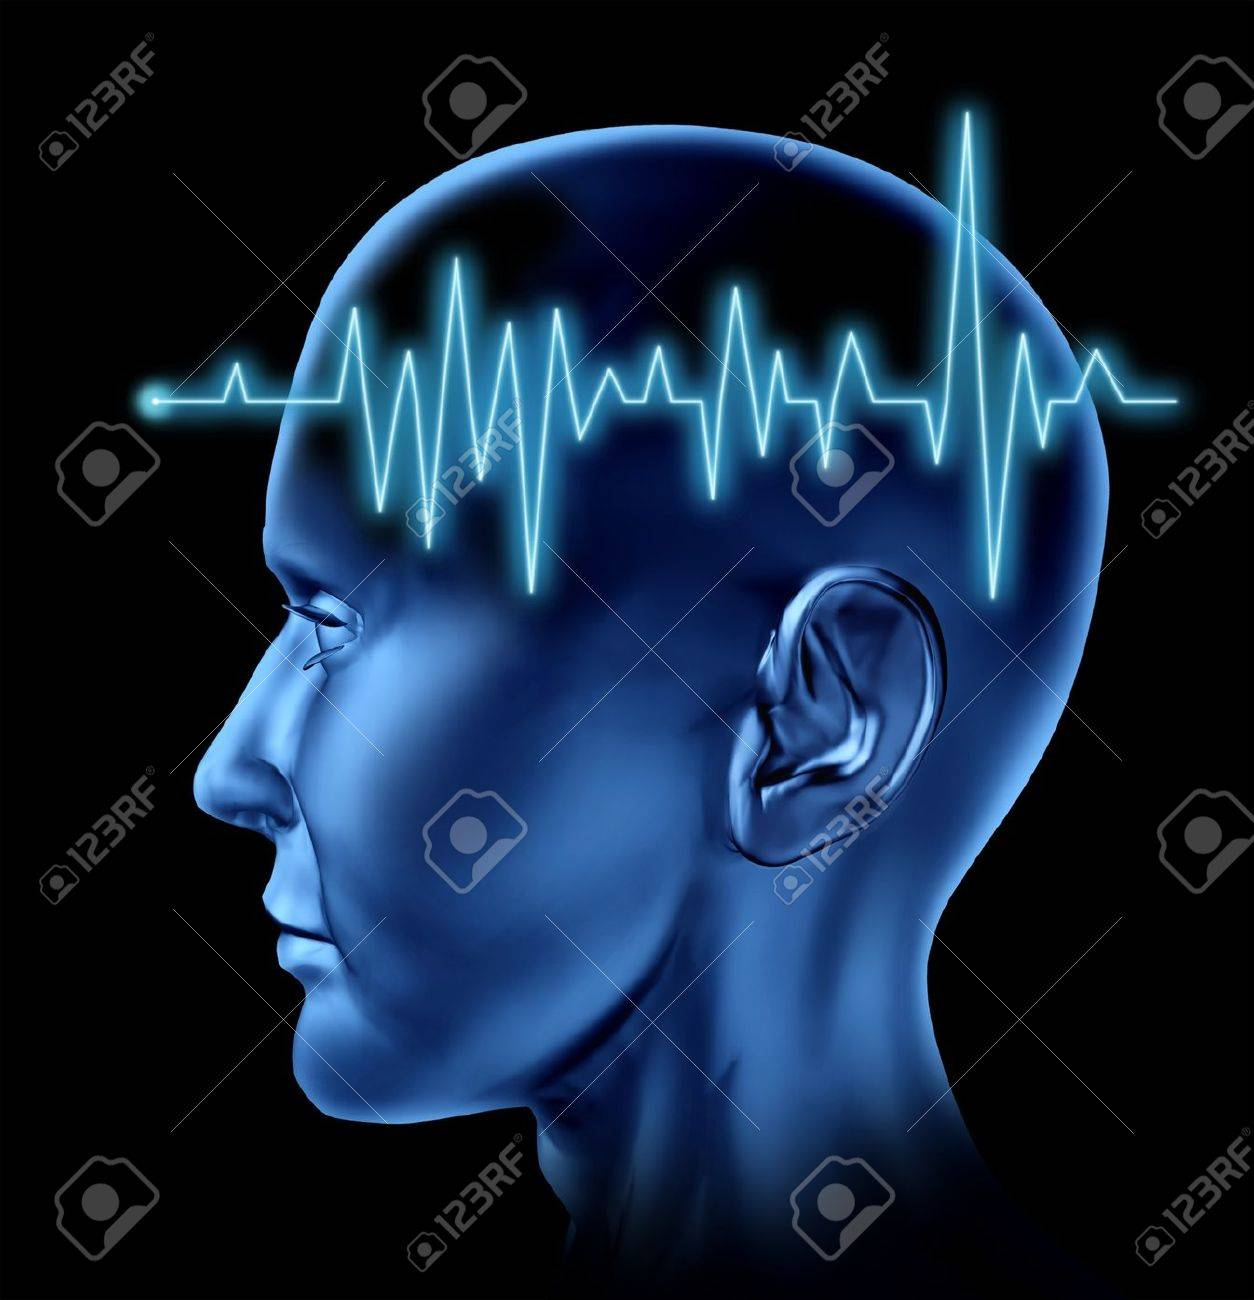 Human Brain ECG Health monitoring of the electrical signals that cause seizures in the human mind and charting the cognitive mental function of the intelligence of the anatomy of the body. - 11718474